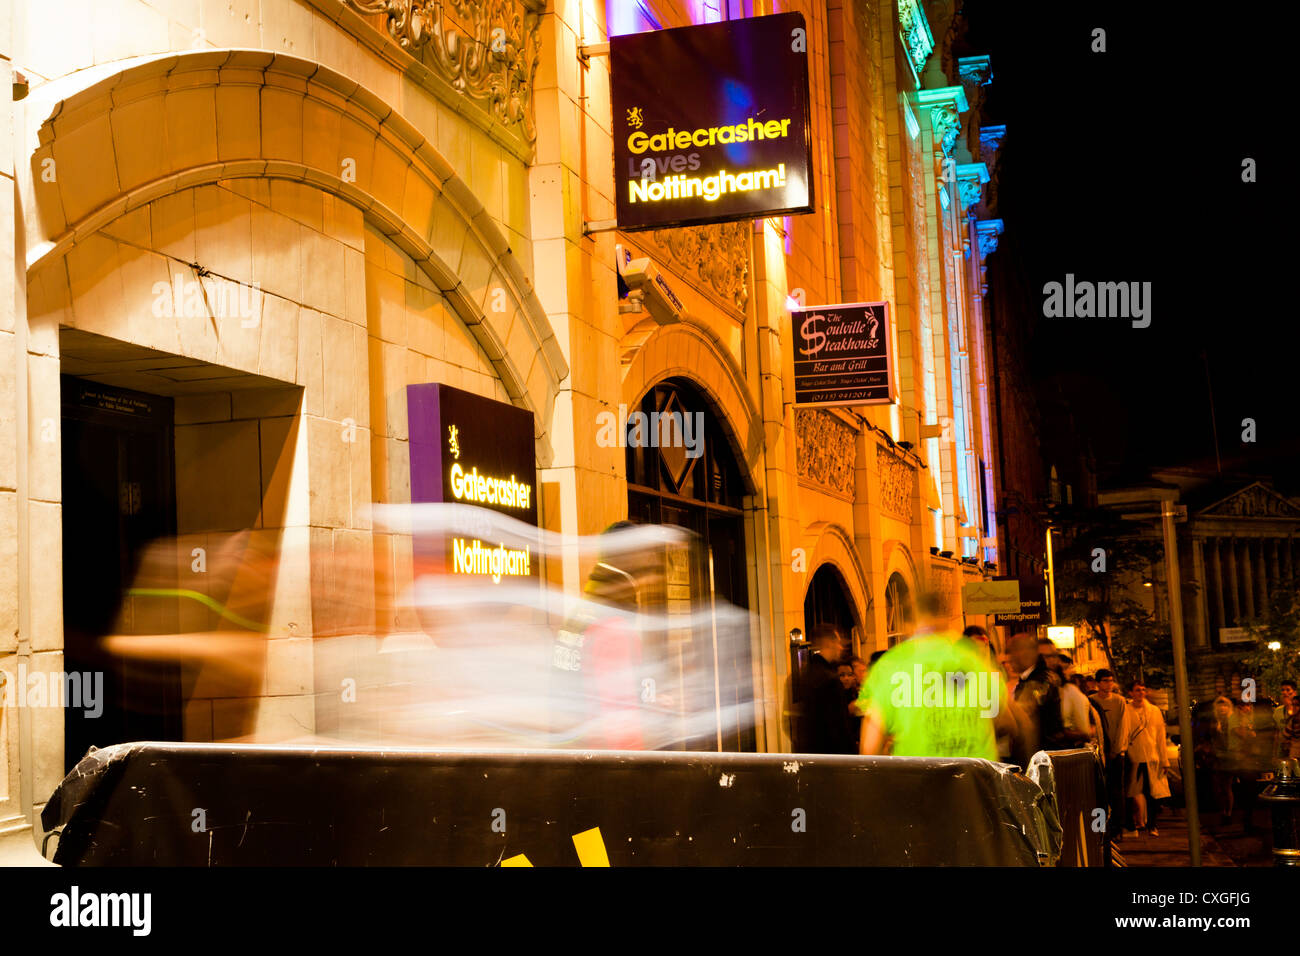 Motion blur of people queueing and entering a night club. Student night at Gatecrasher nightclub, Nottingham, England, - Stock Image